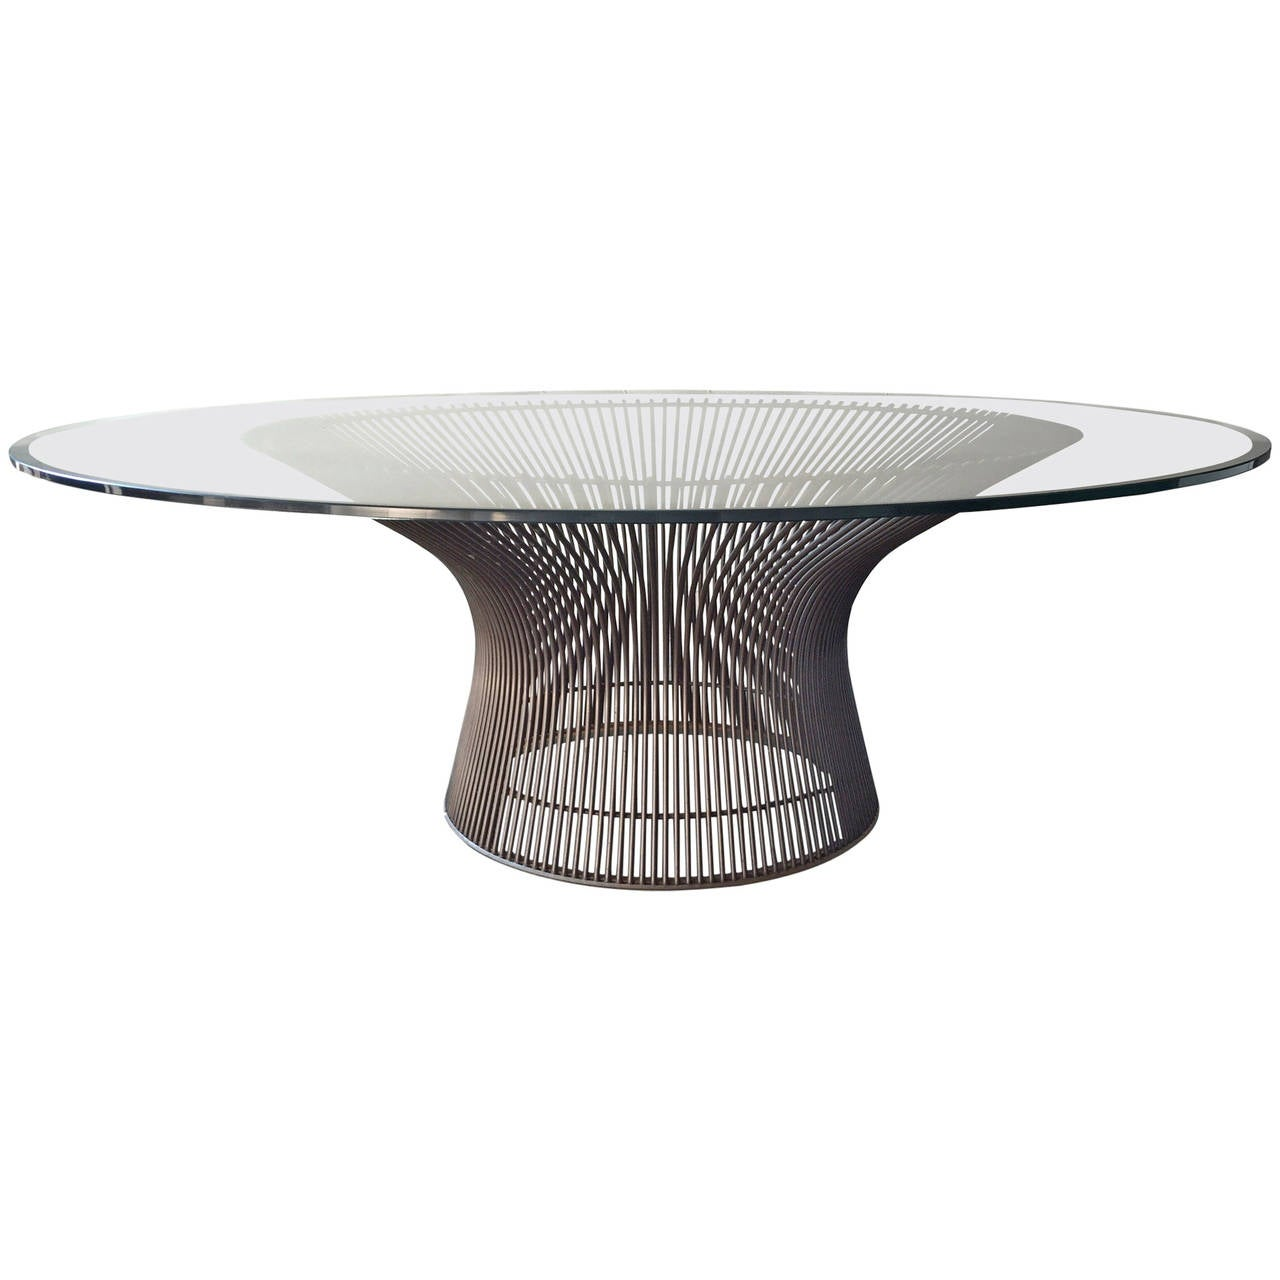 Warren Platner Bronze Coffee Table Knoll 1966 At 1stdibs